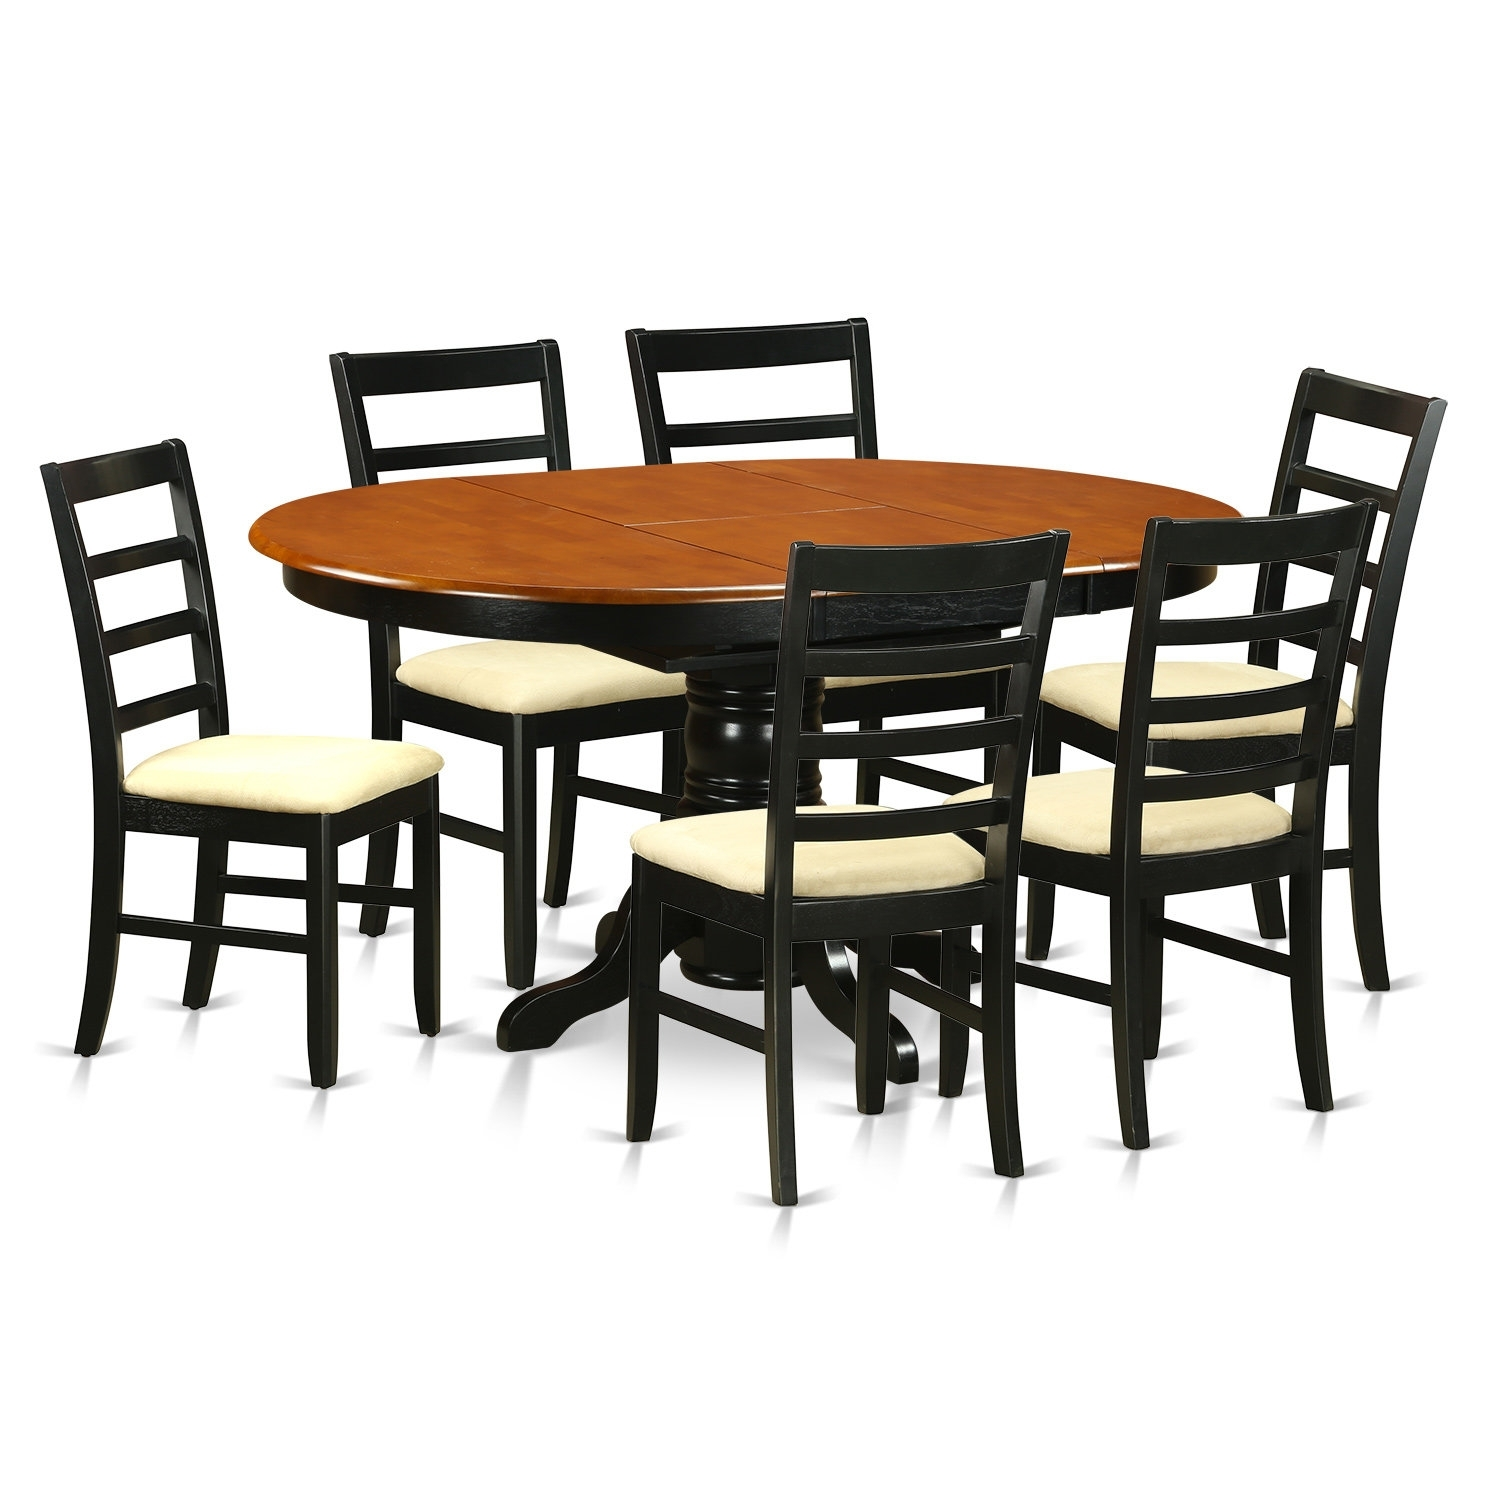 Darby Home Co Attamore 7 Piece Dining Set | Wayfair Intended For Latest Chandler 7 Piece Extension Dining Sets With Wood Side Chairs (Image 11 of 20)